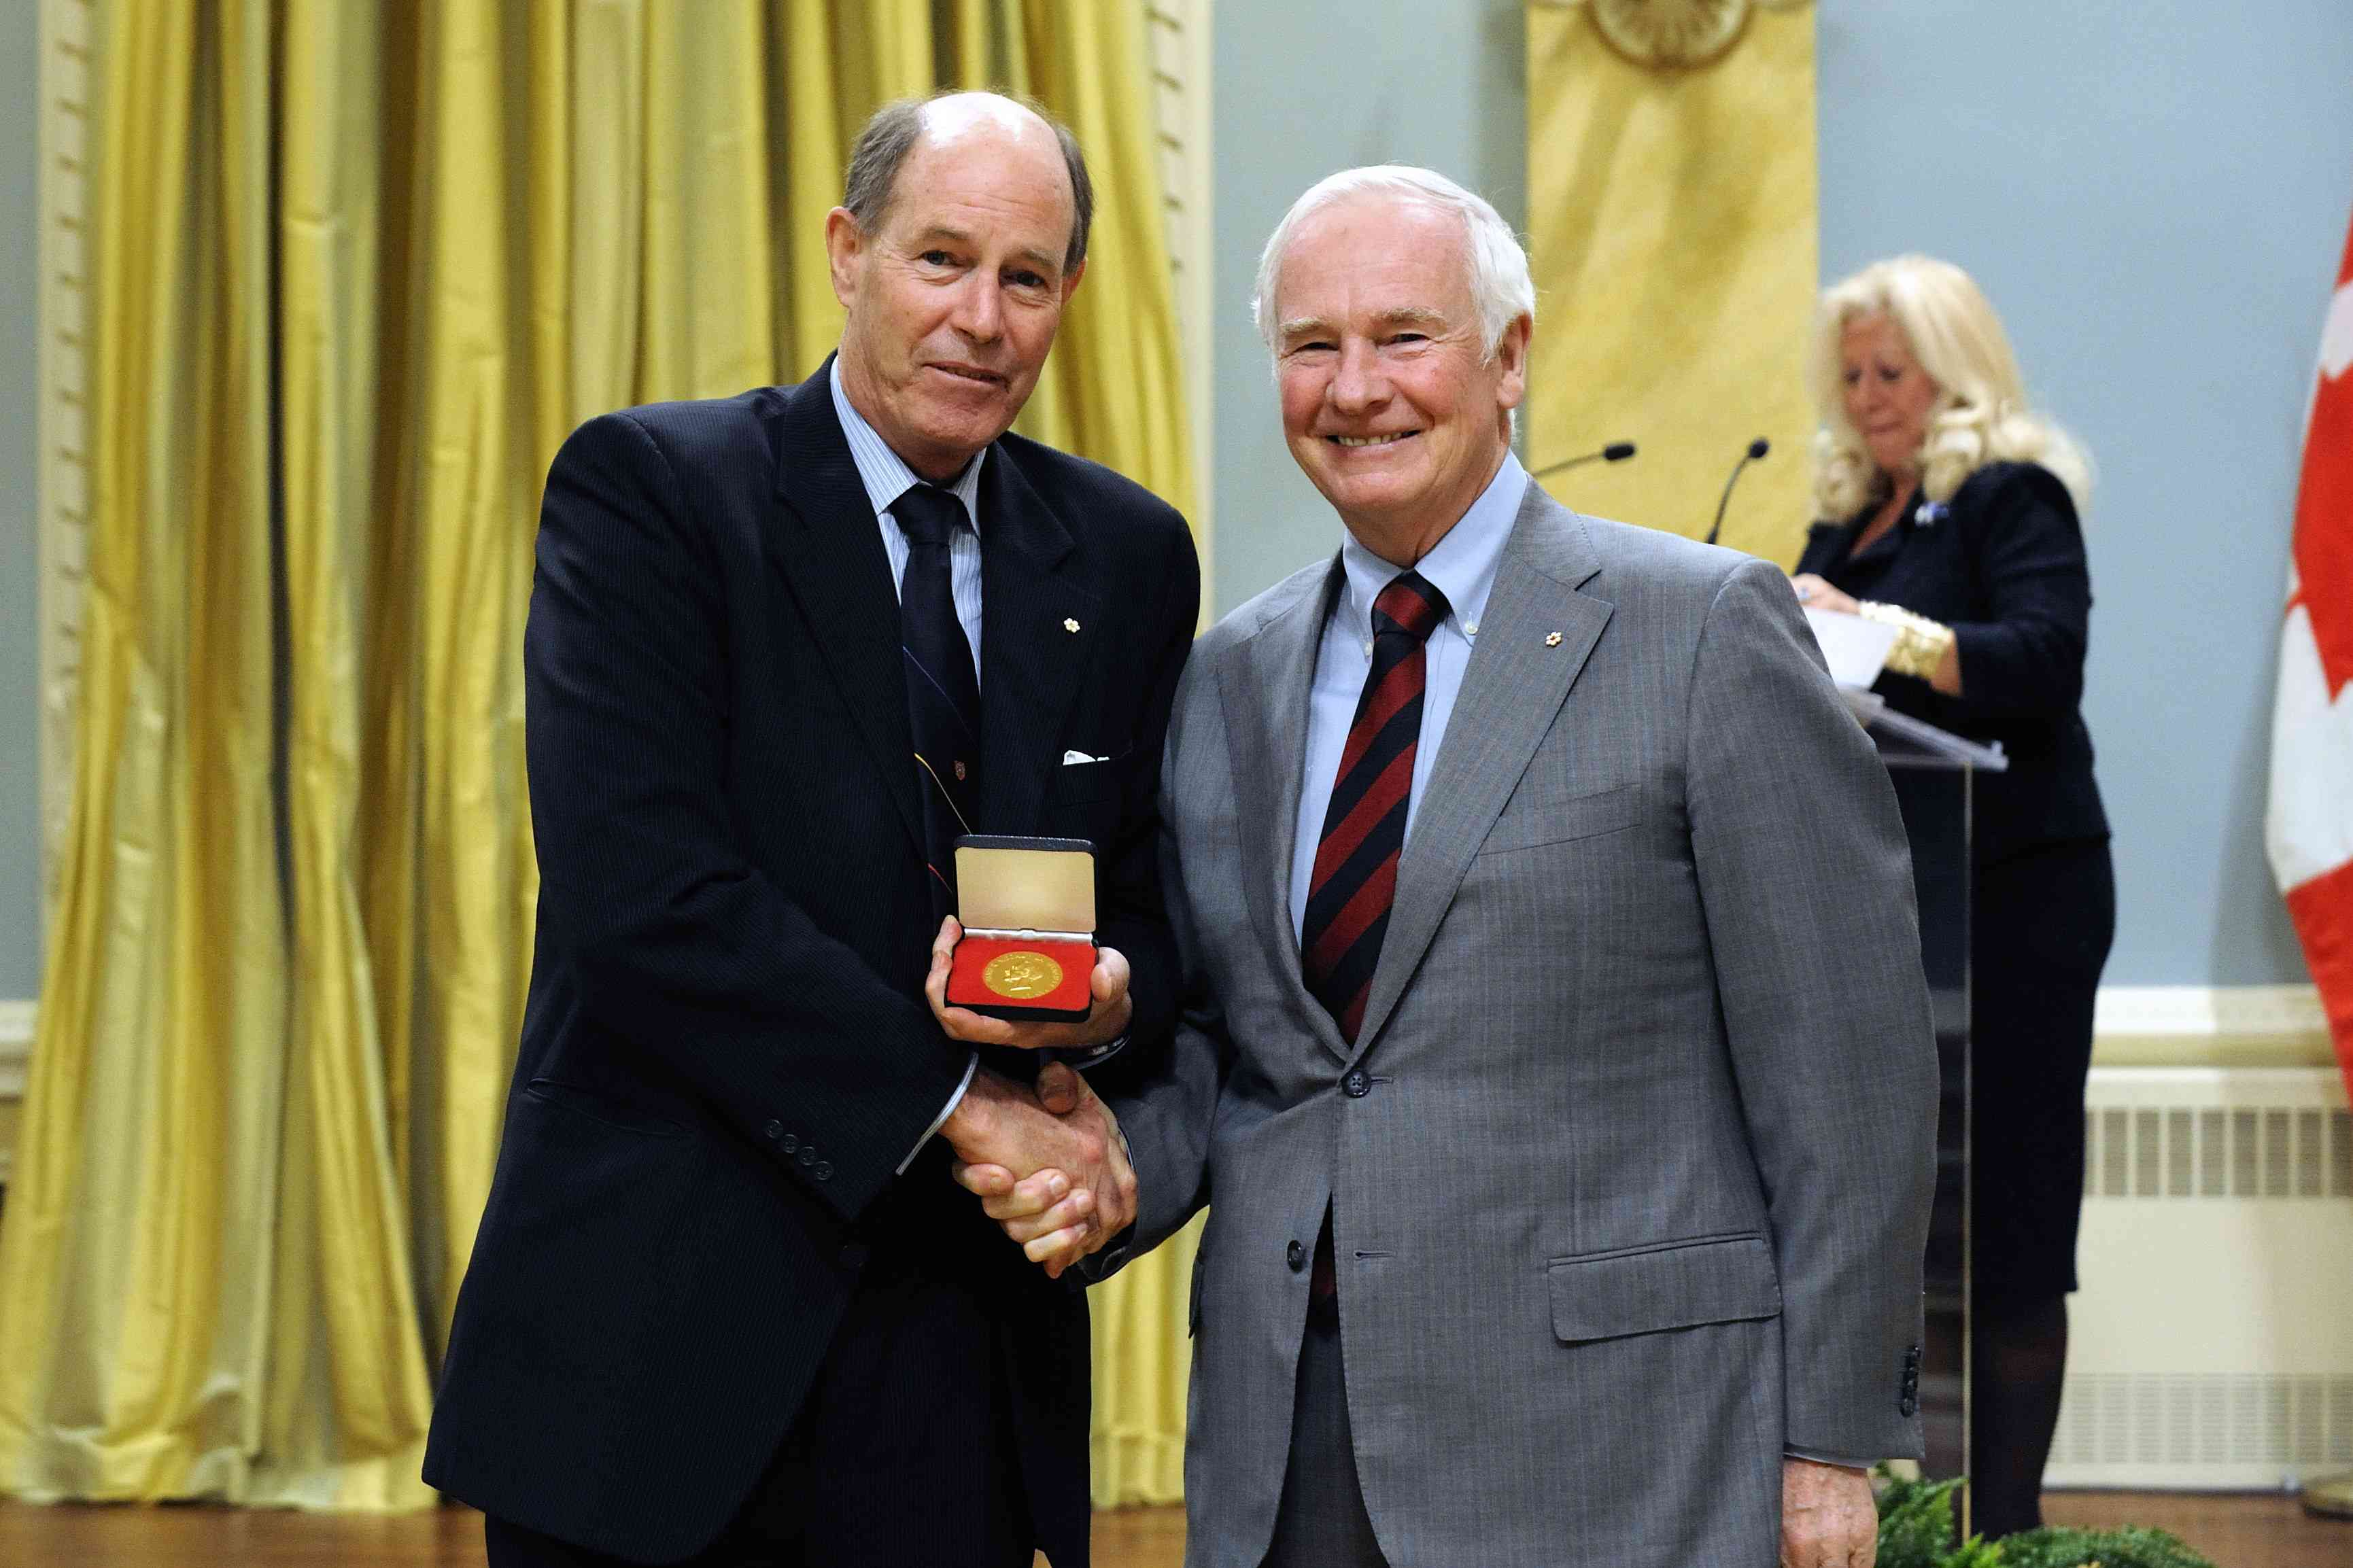 Dr. David Dodge is the recipient of the 2011 Vanier Medal. This medal is awarded annually to a person who has shown distinctive leadership and has made significant contributions to the fields of public administration and public service in Canada.